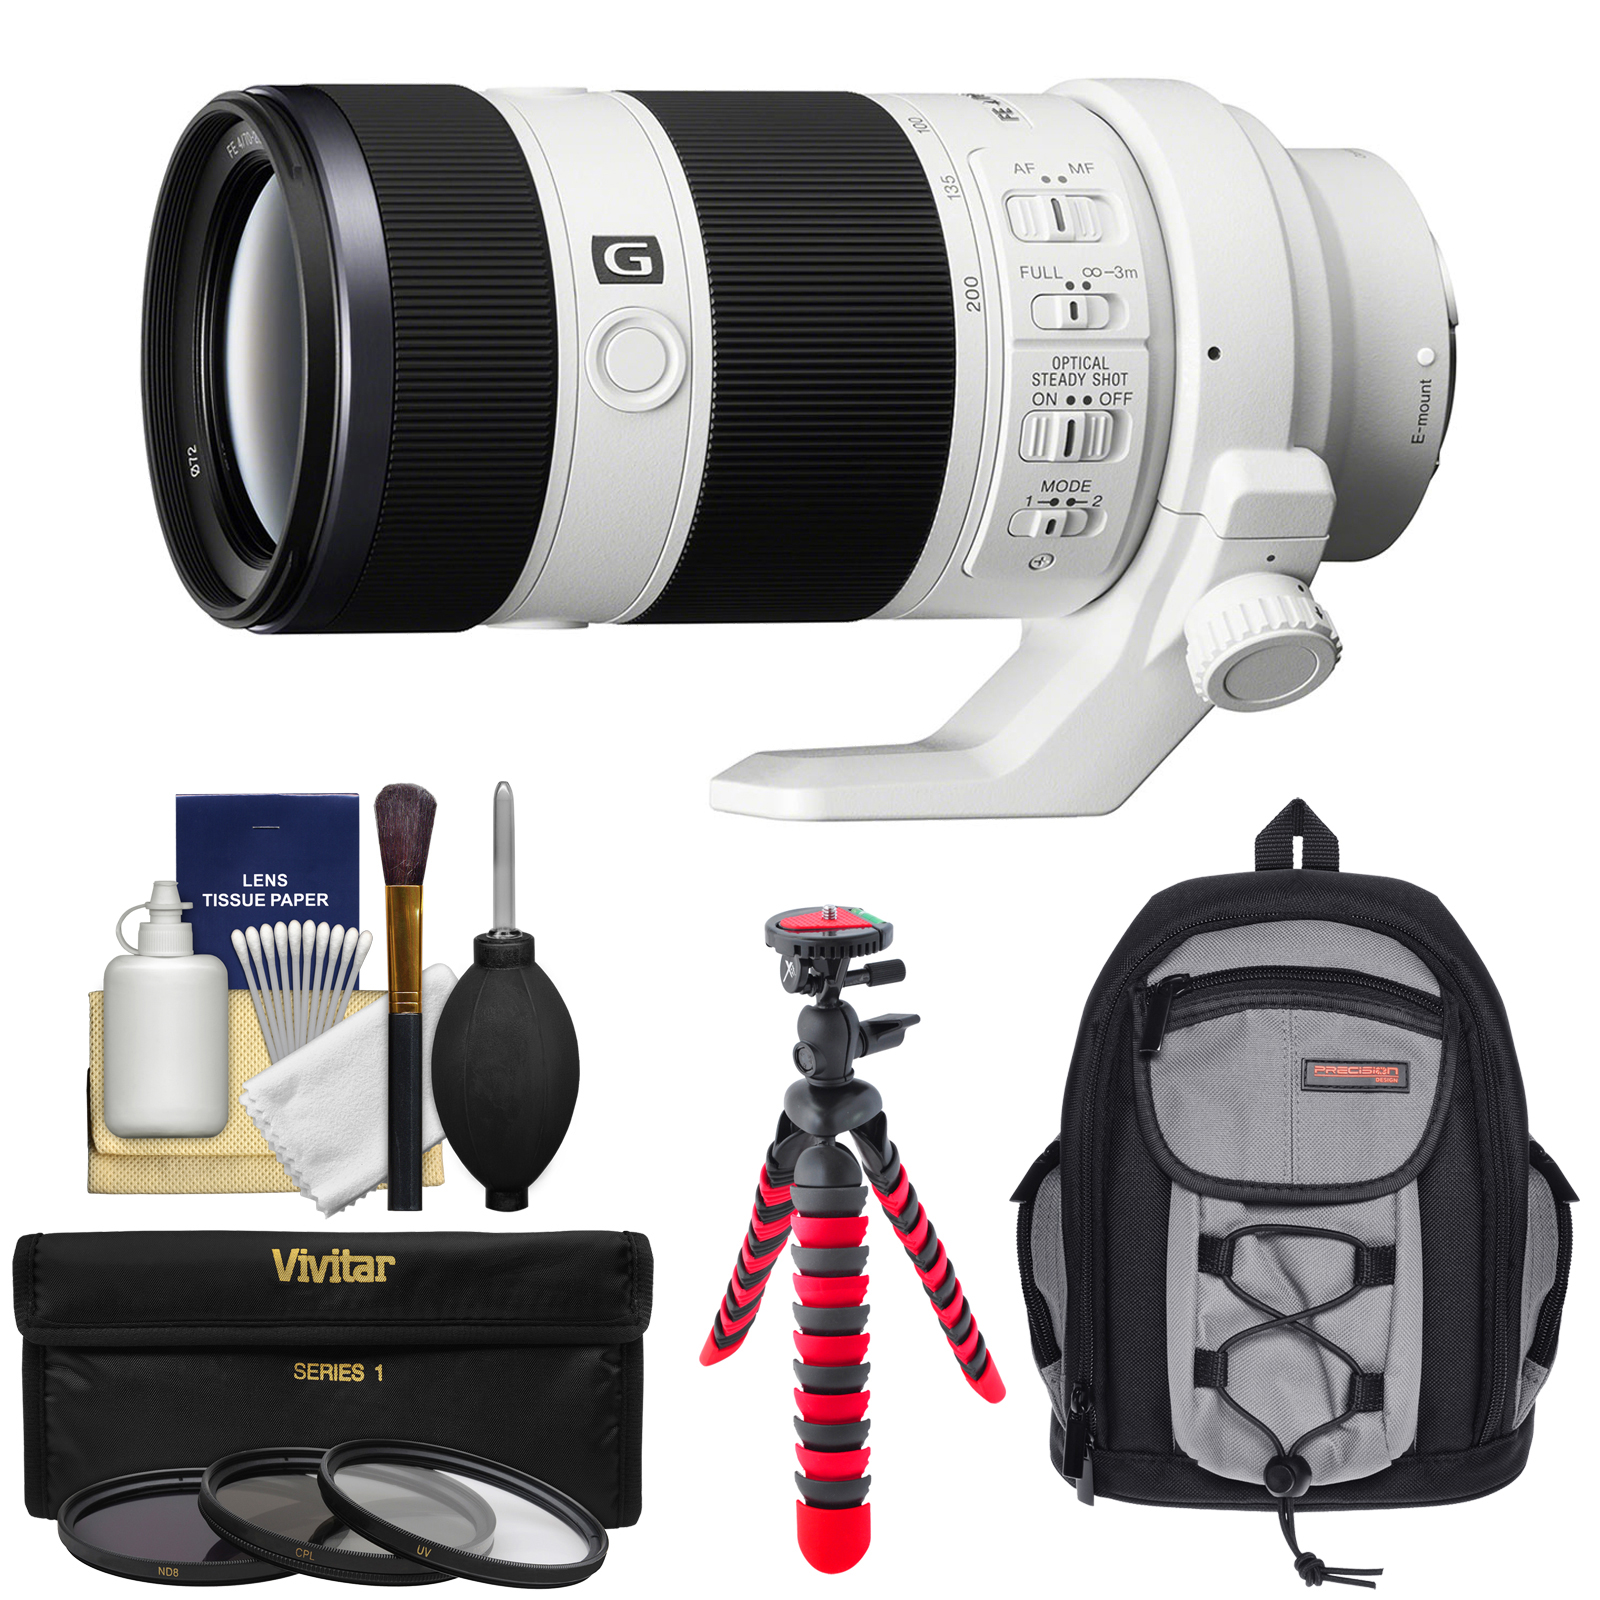 Sony Alpha E-Mount FE 70-200mm f/4.0 G OSS Zoom Lens with Backpack + 3 Filters + Flex Tripod + Kit for A7, A7R, A7S Mark II Cameras